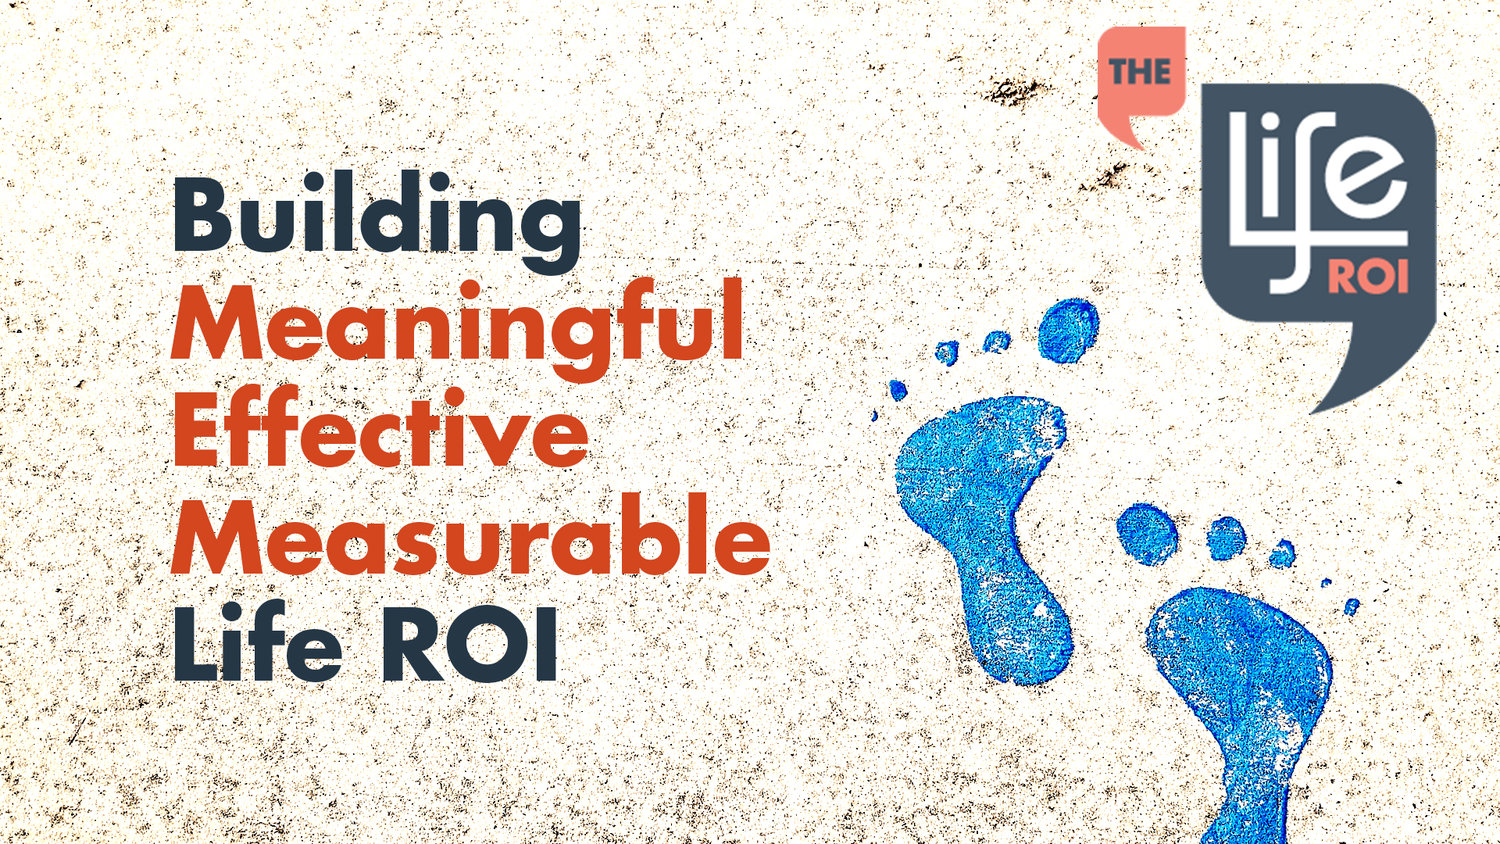 The Life ROI Branding Image